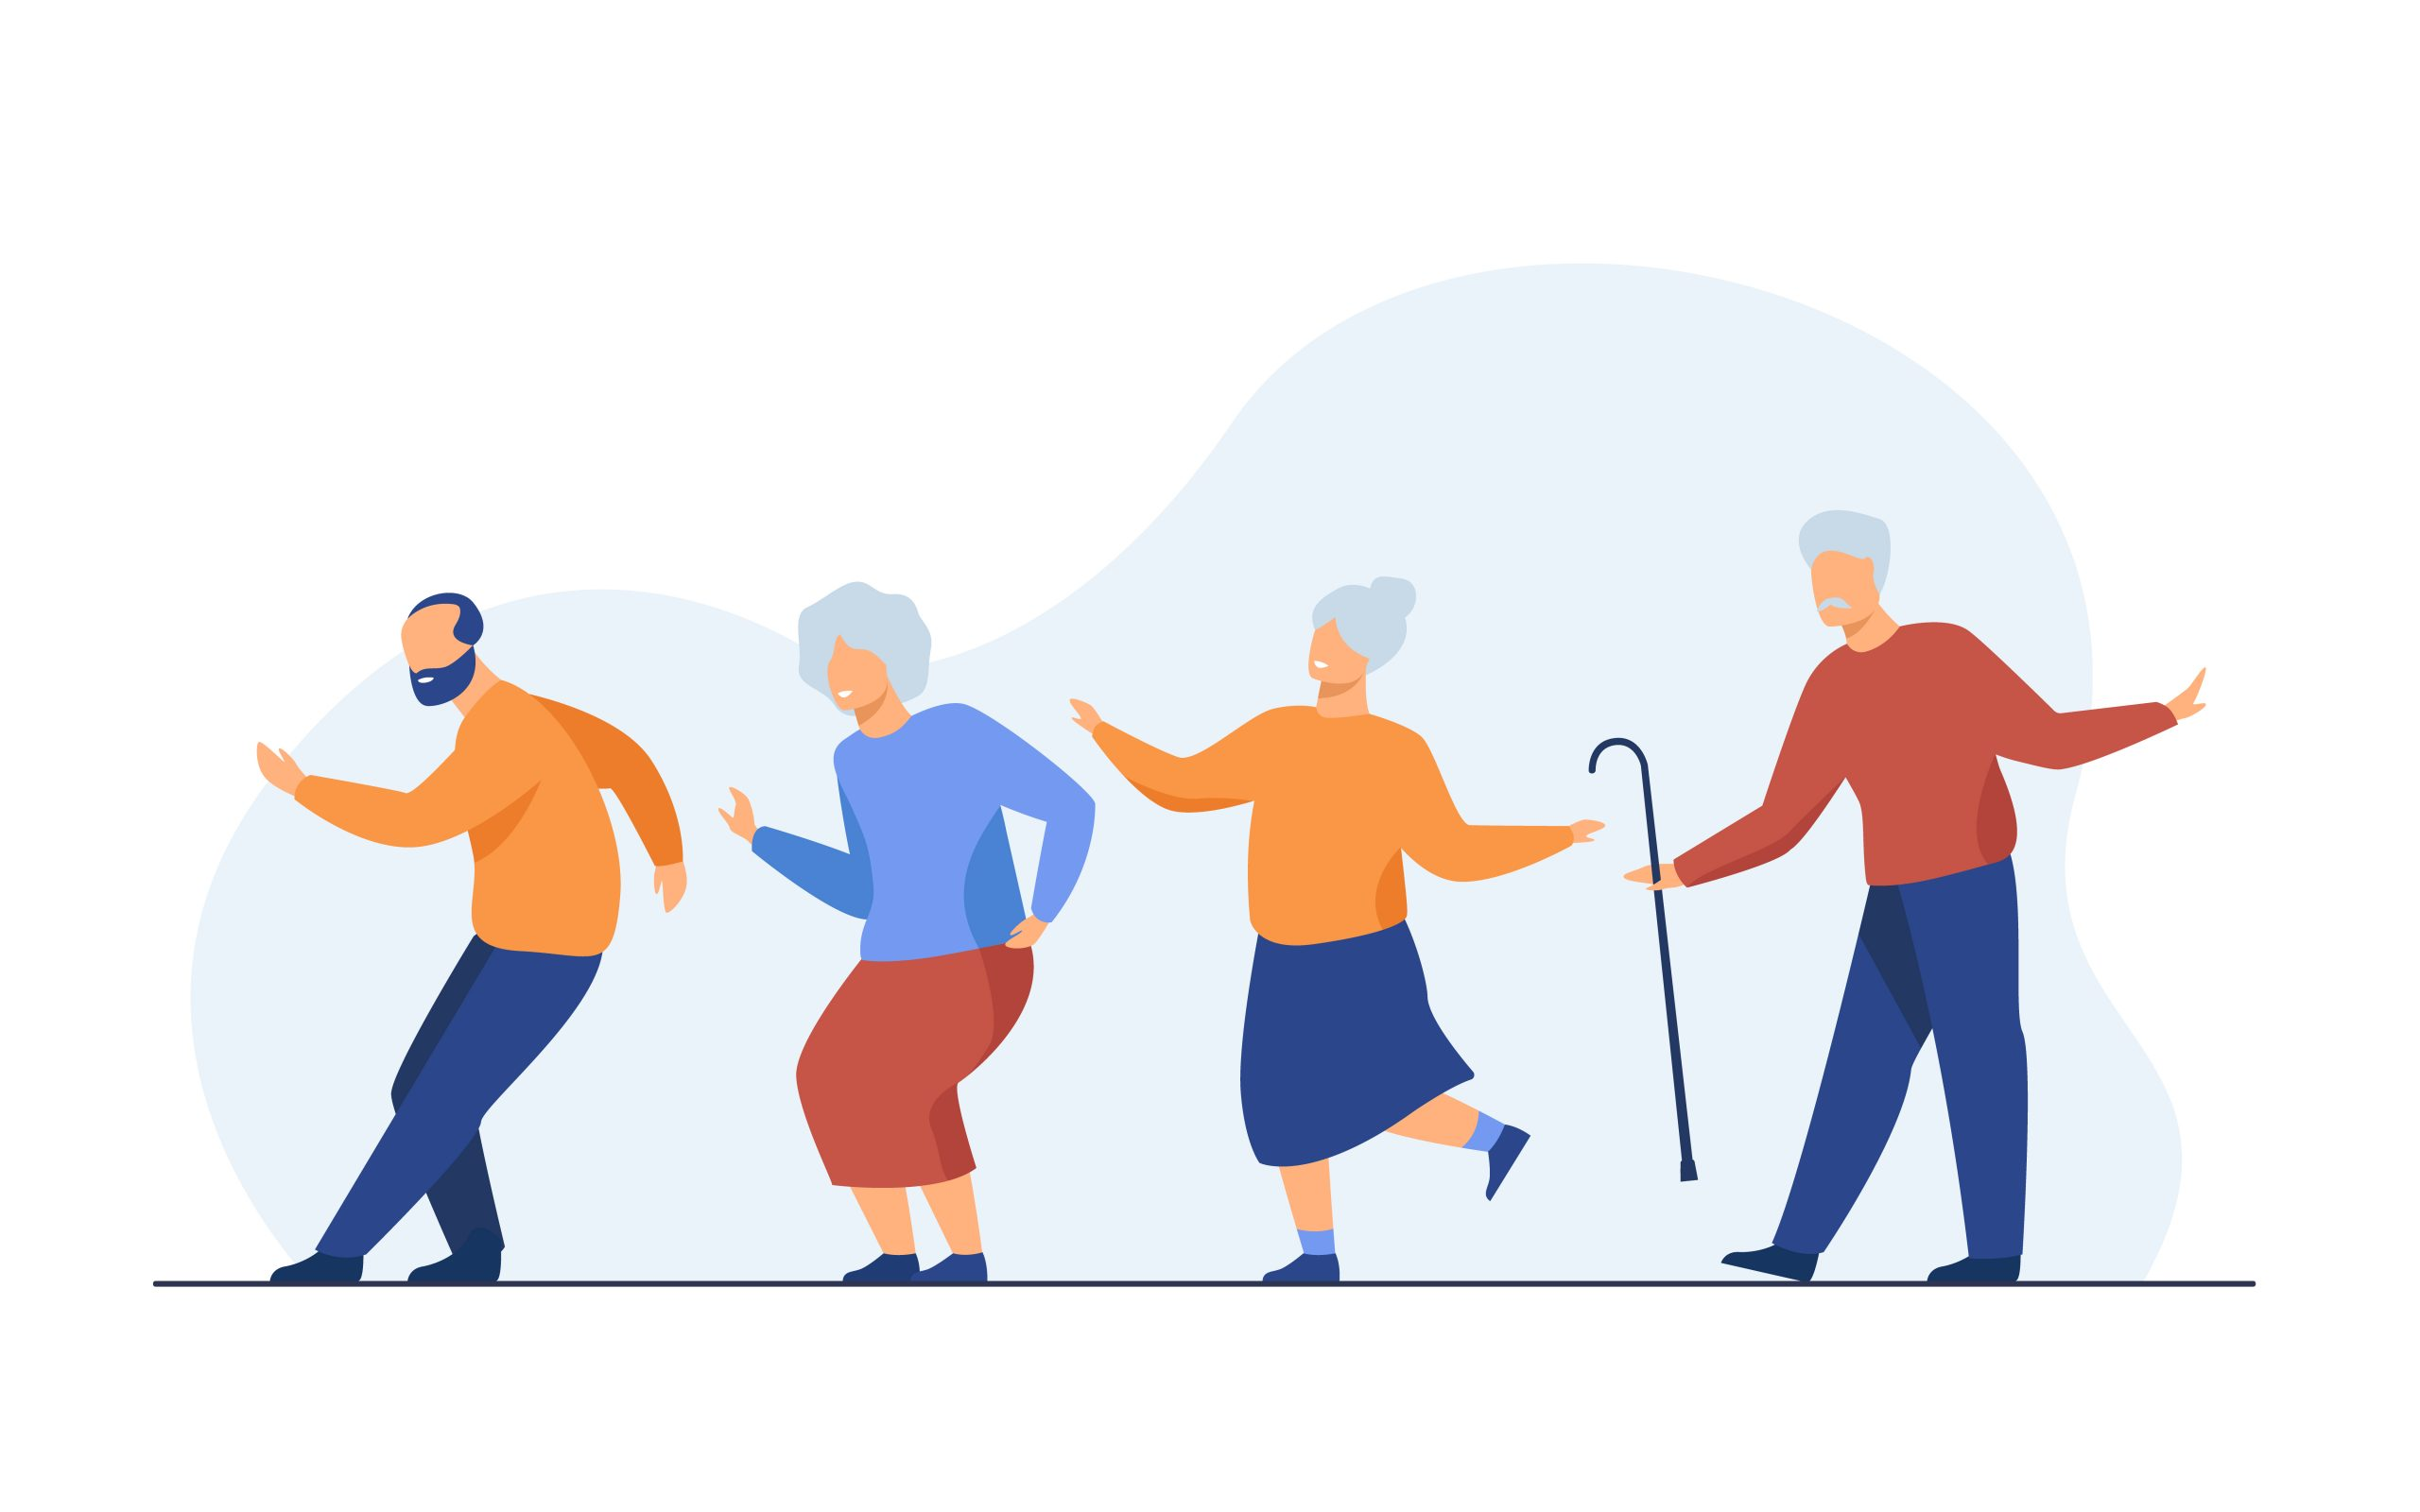 Happy senior people dancing at party. Cartoon grey haired old men and women enjoying music in club, having fun . Vector illustration for age, hobby, joy, retirement concept